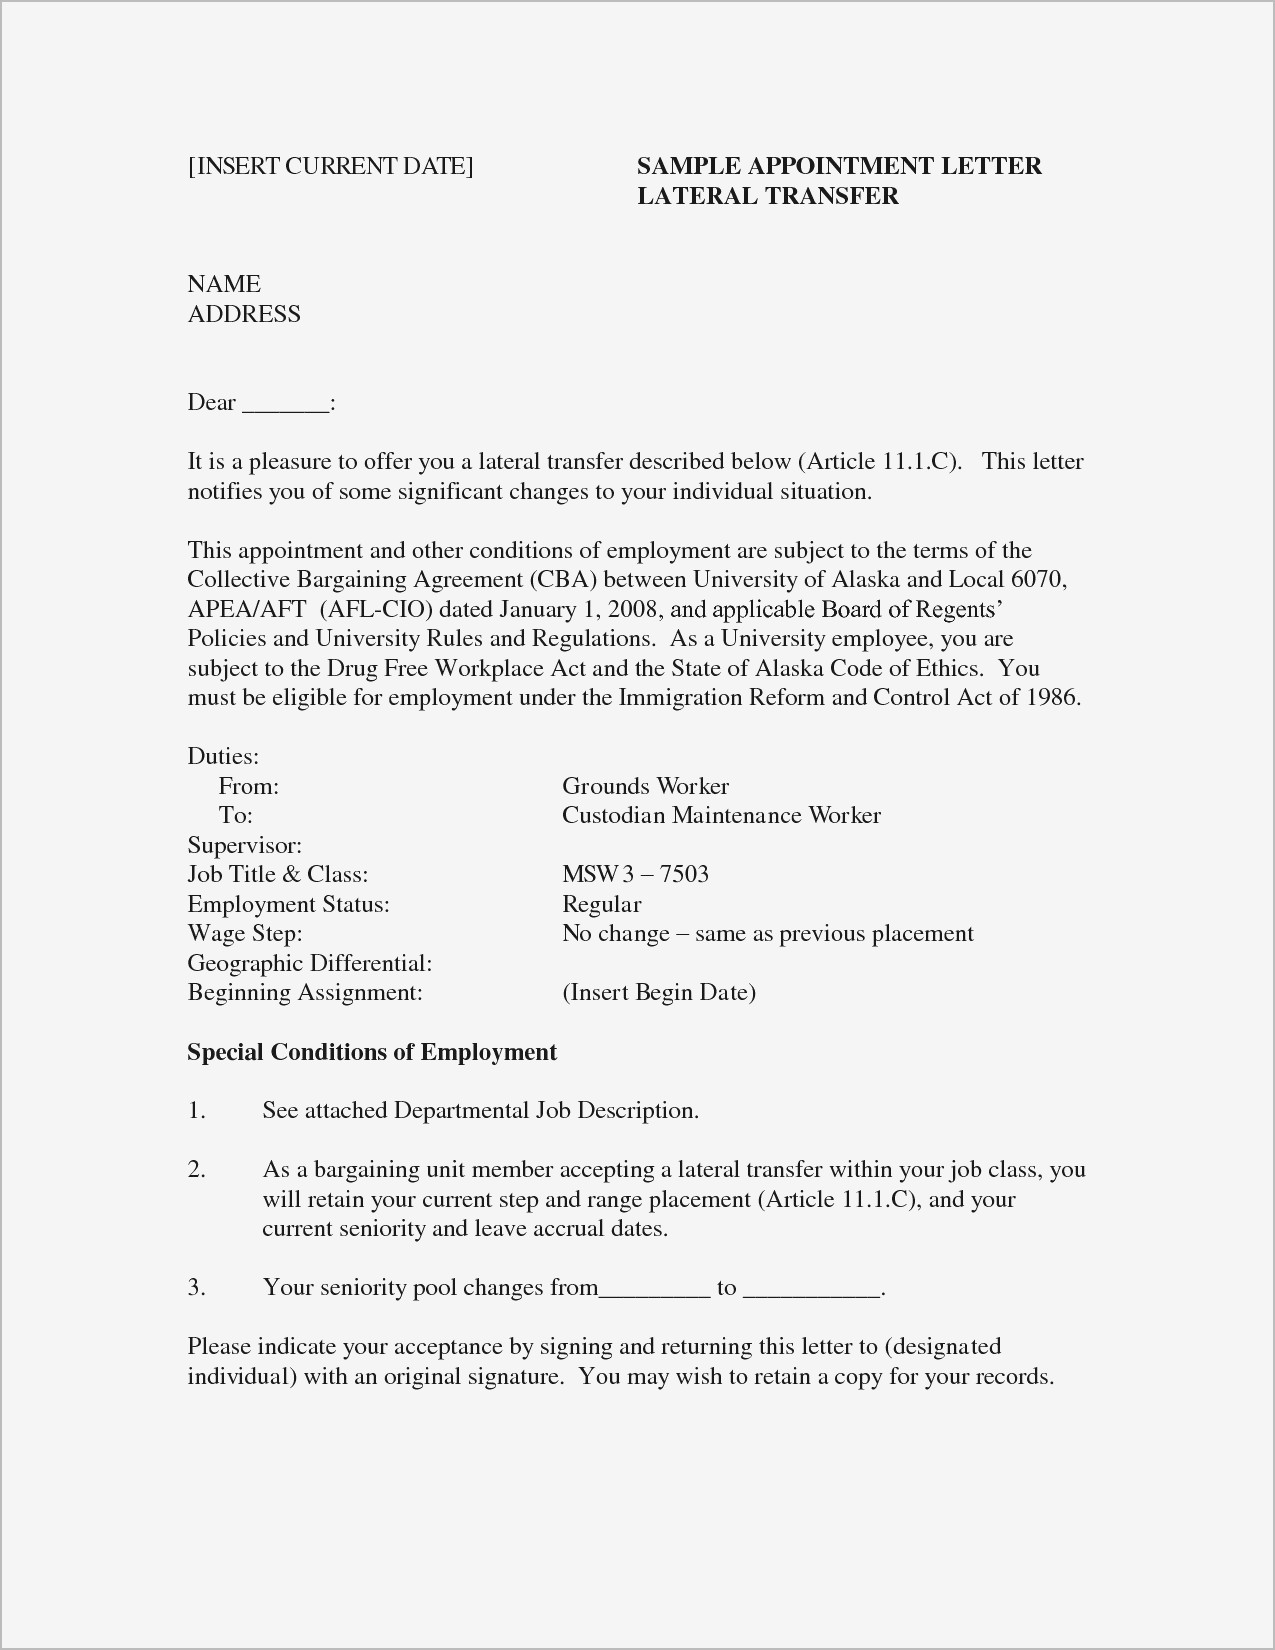 Job Offer Acceptance Letter Template - Job Fer Acceptance Letter Inspirationa Job Fer Letter Template Us